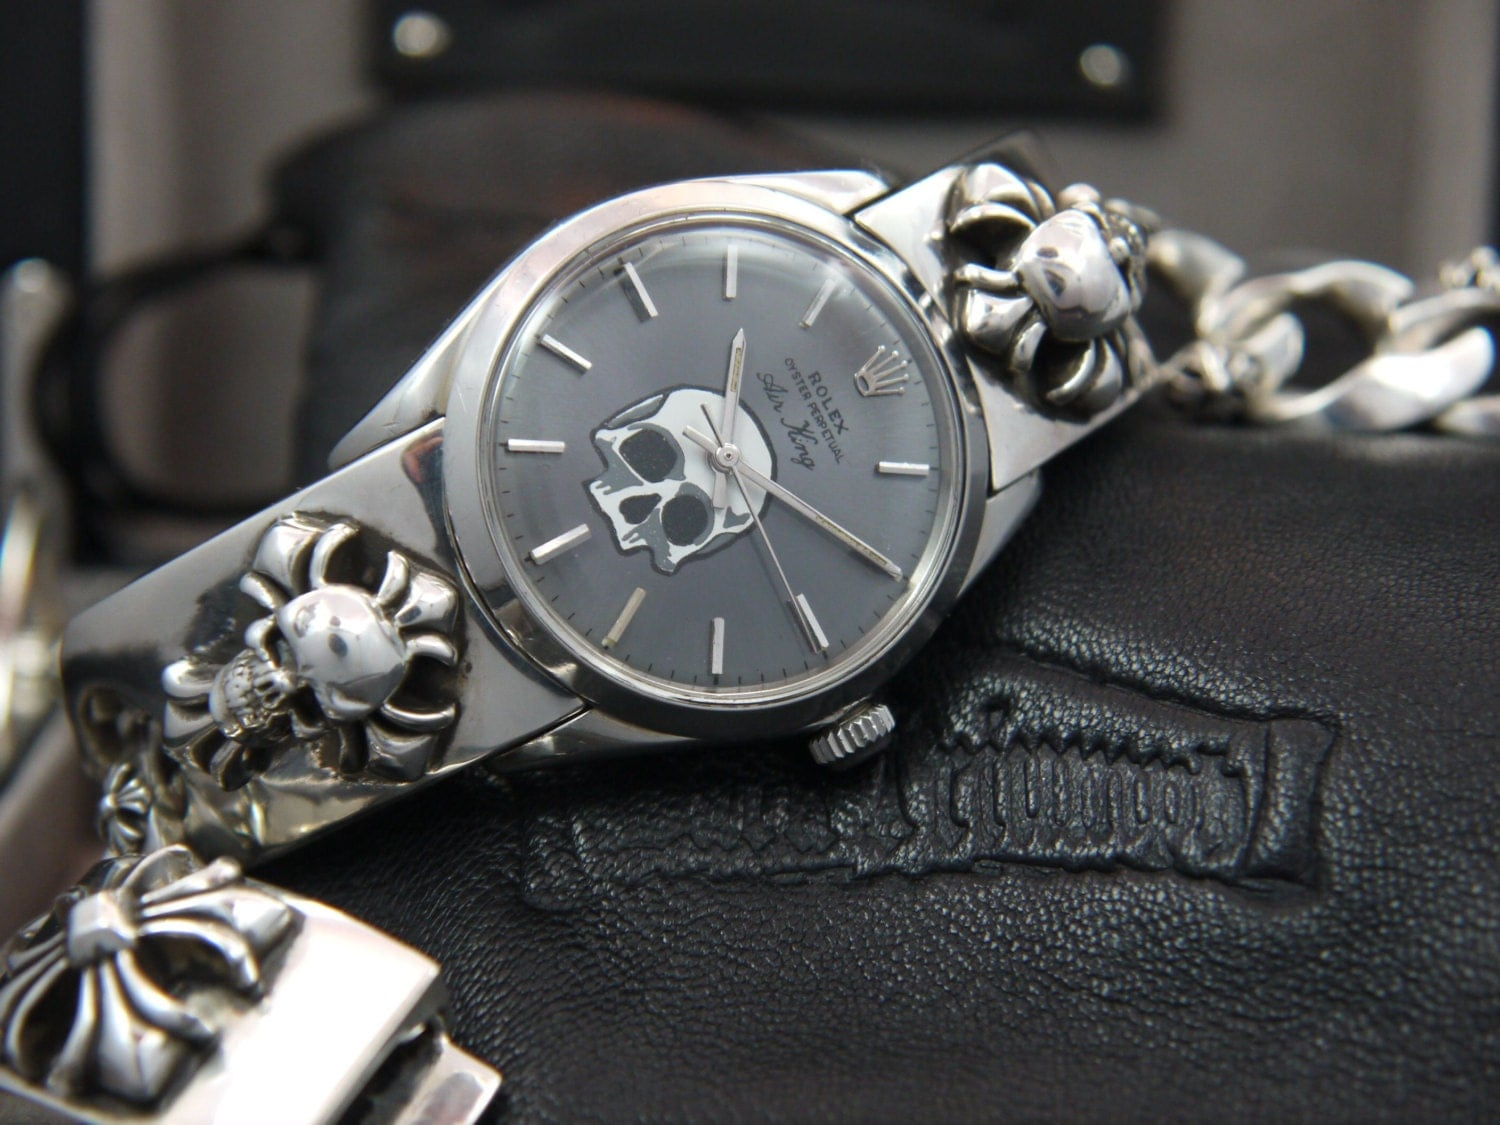 The Dorian Gray - Vintage ROLEX Watch exquisitely united with Custom Golgotha Skull CROSS Sterling Silver 0.925 Bracelet by Dark Triumph - DarkTriumph